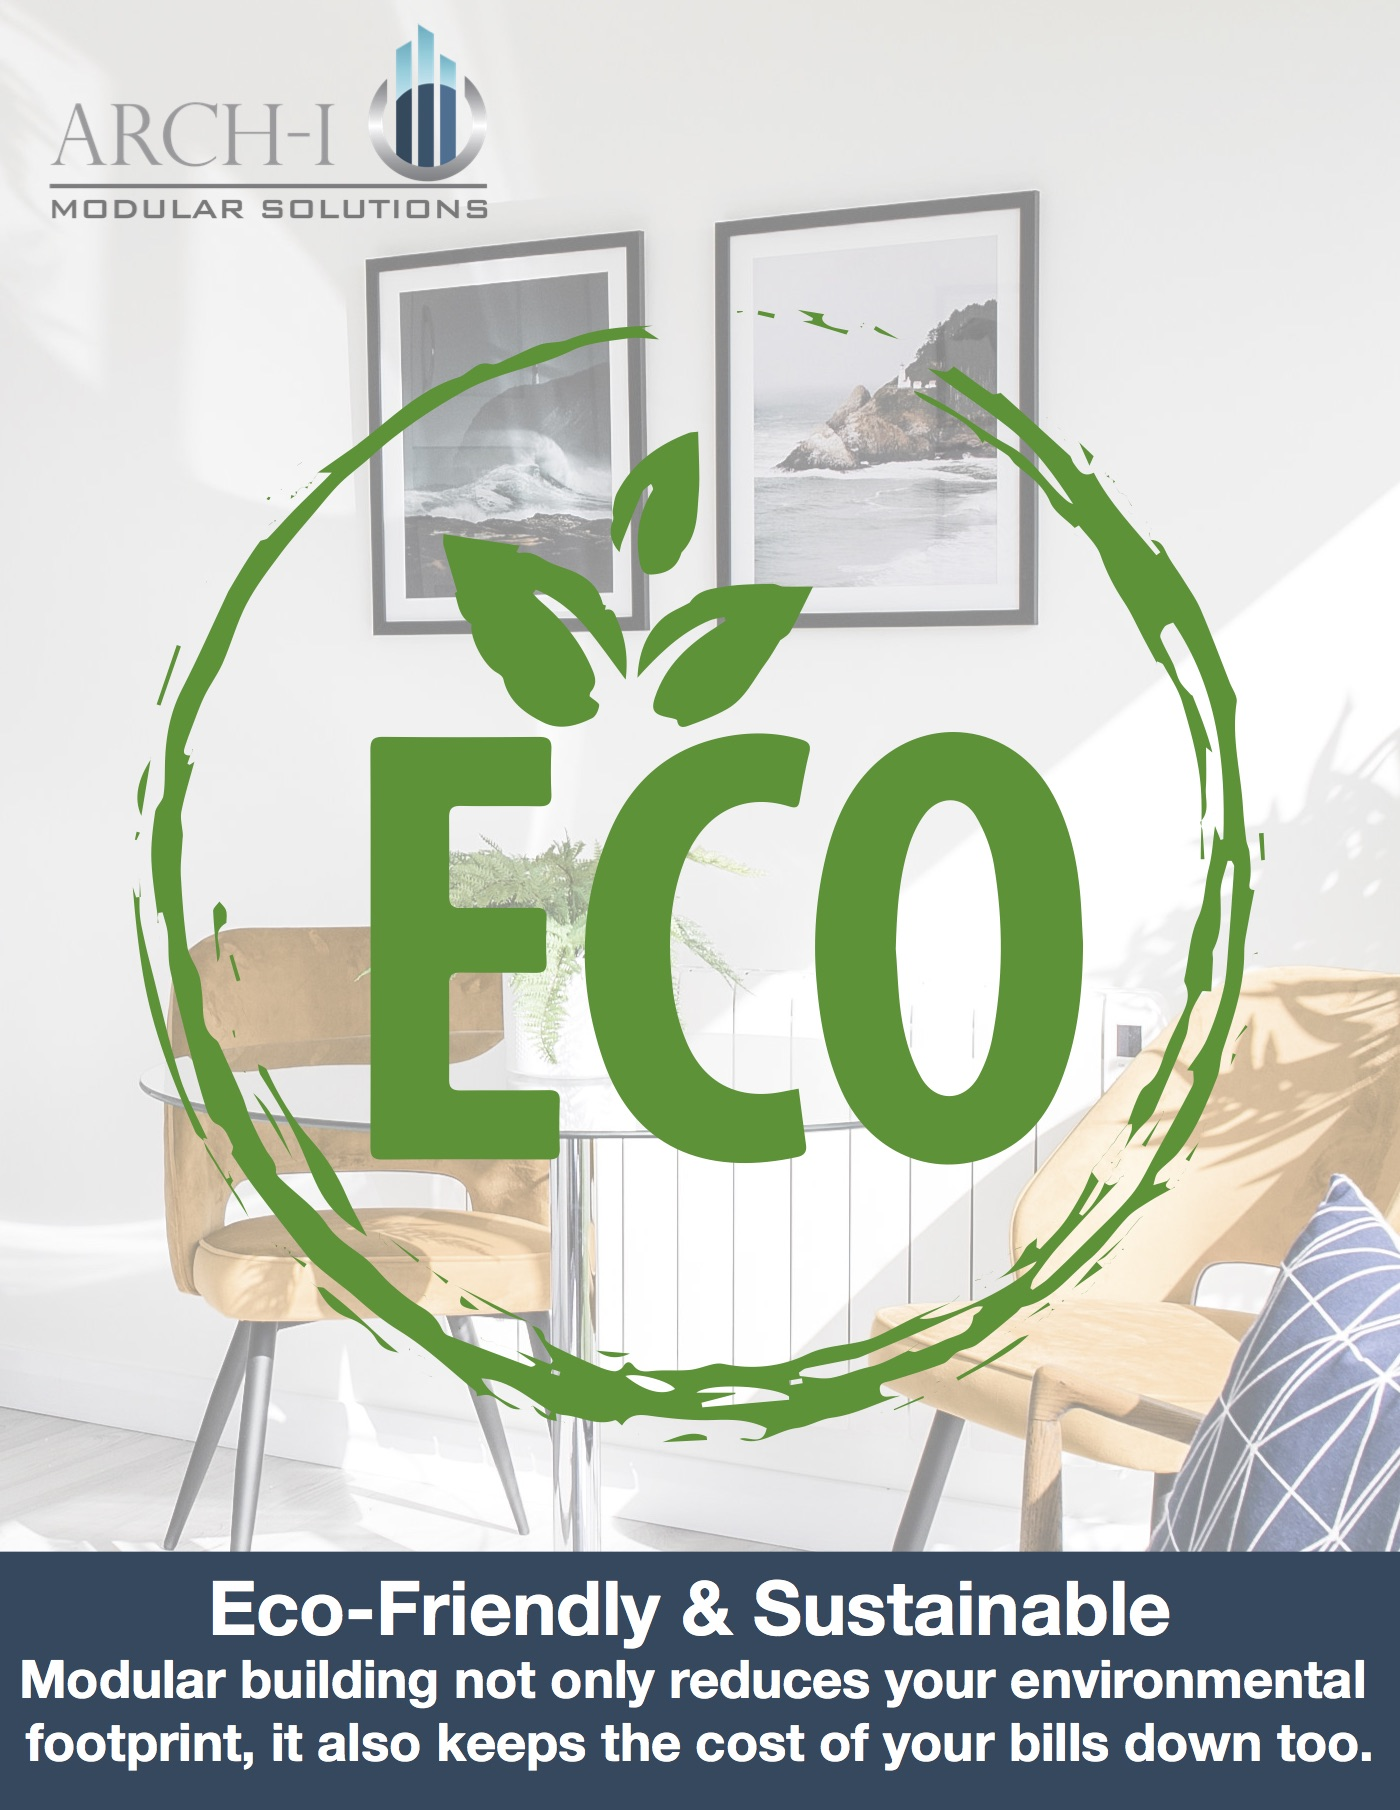 Is Modular Construction More Environmentally Sustainable?